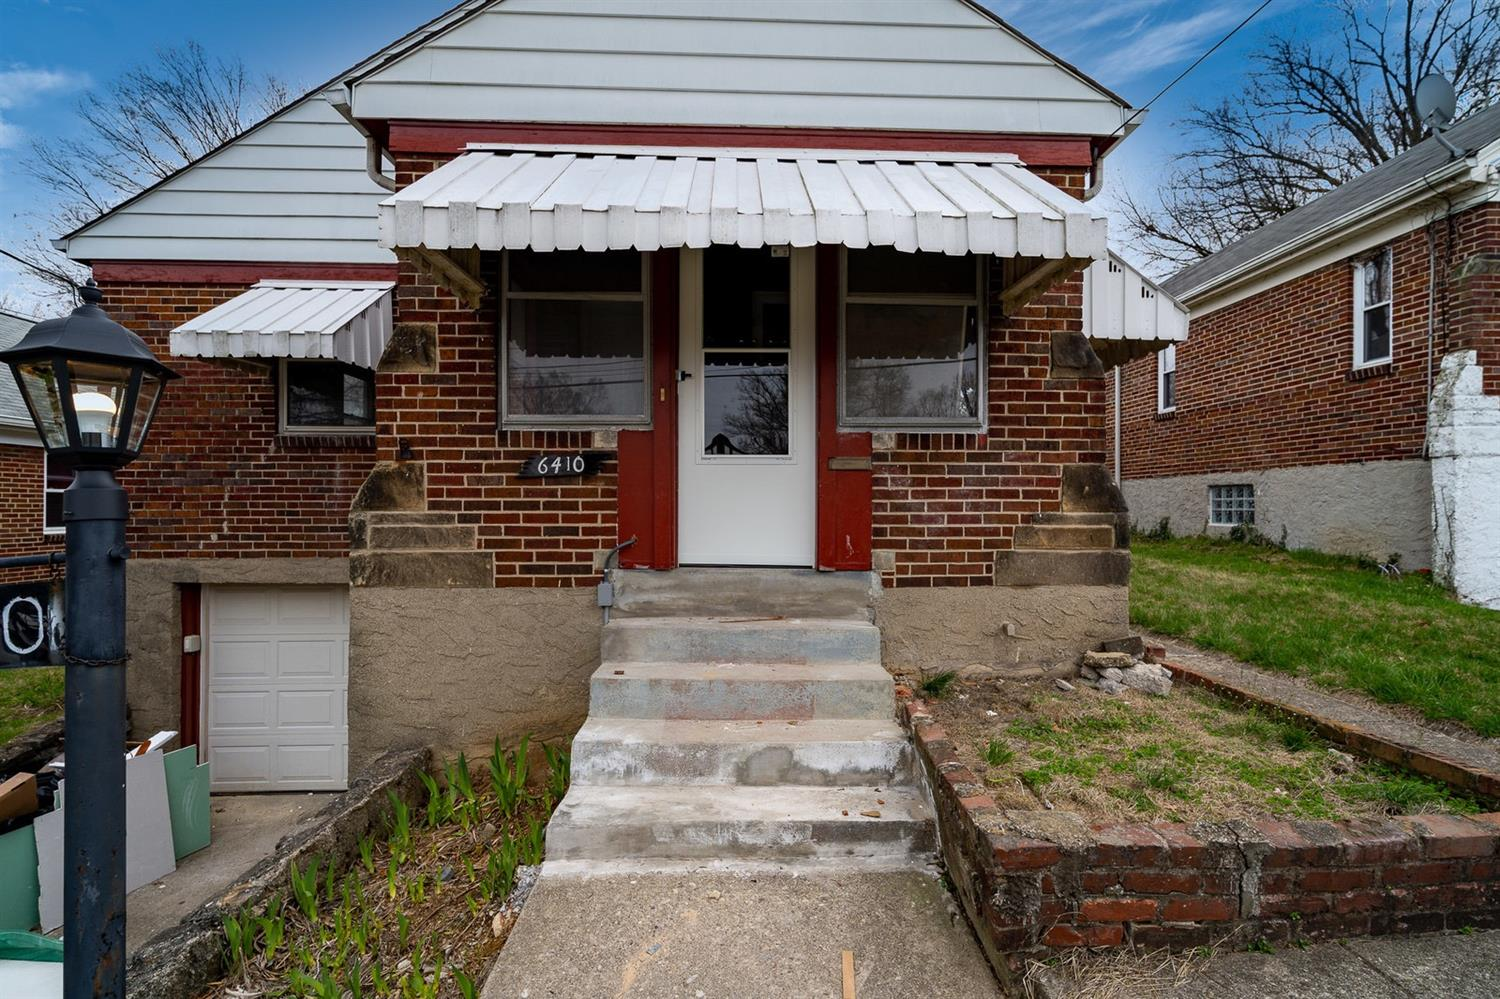 Property for sale at 6410 Stover Avenue, Golf Manor,  Ohio 45237